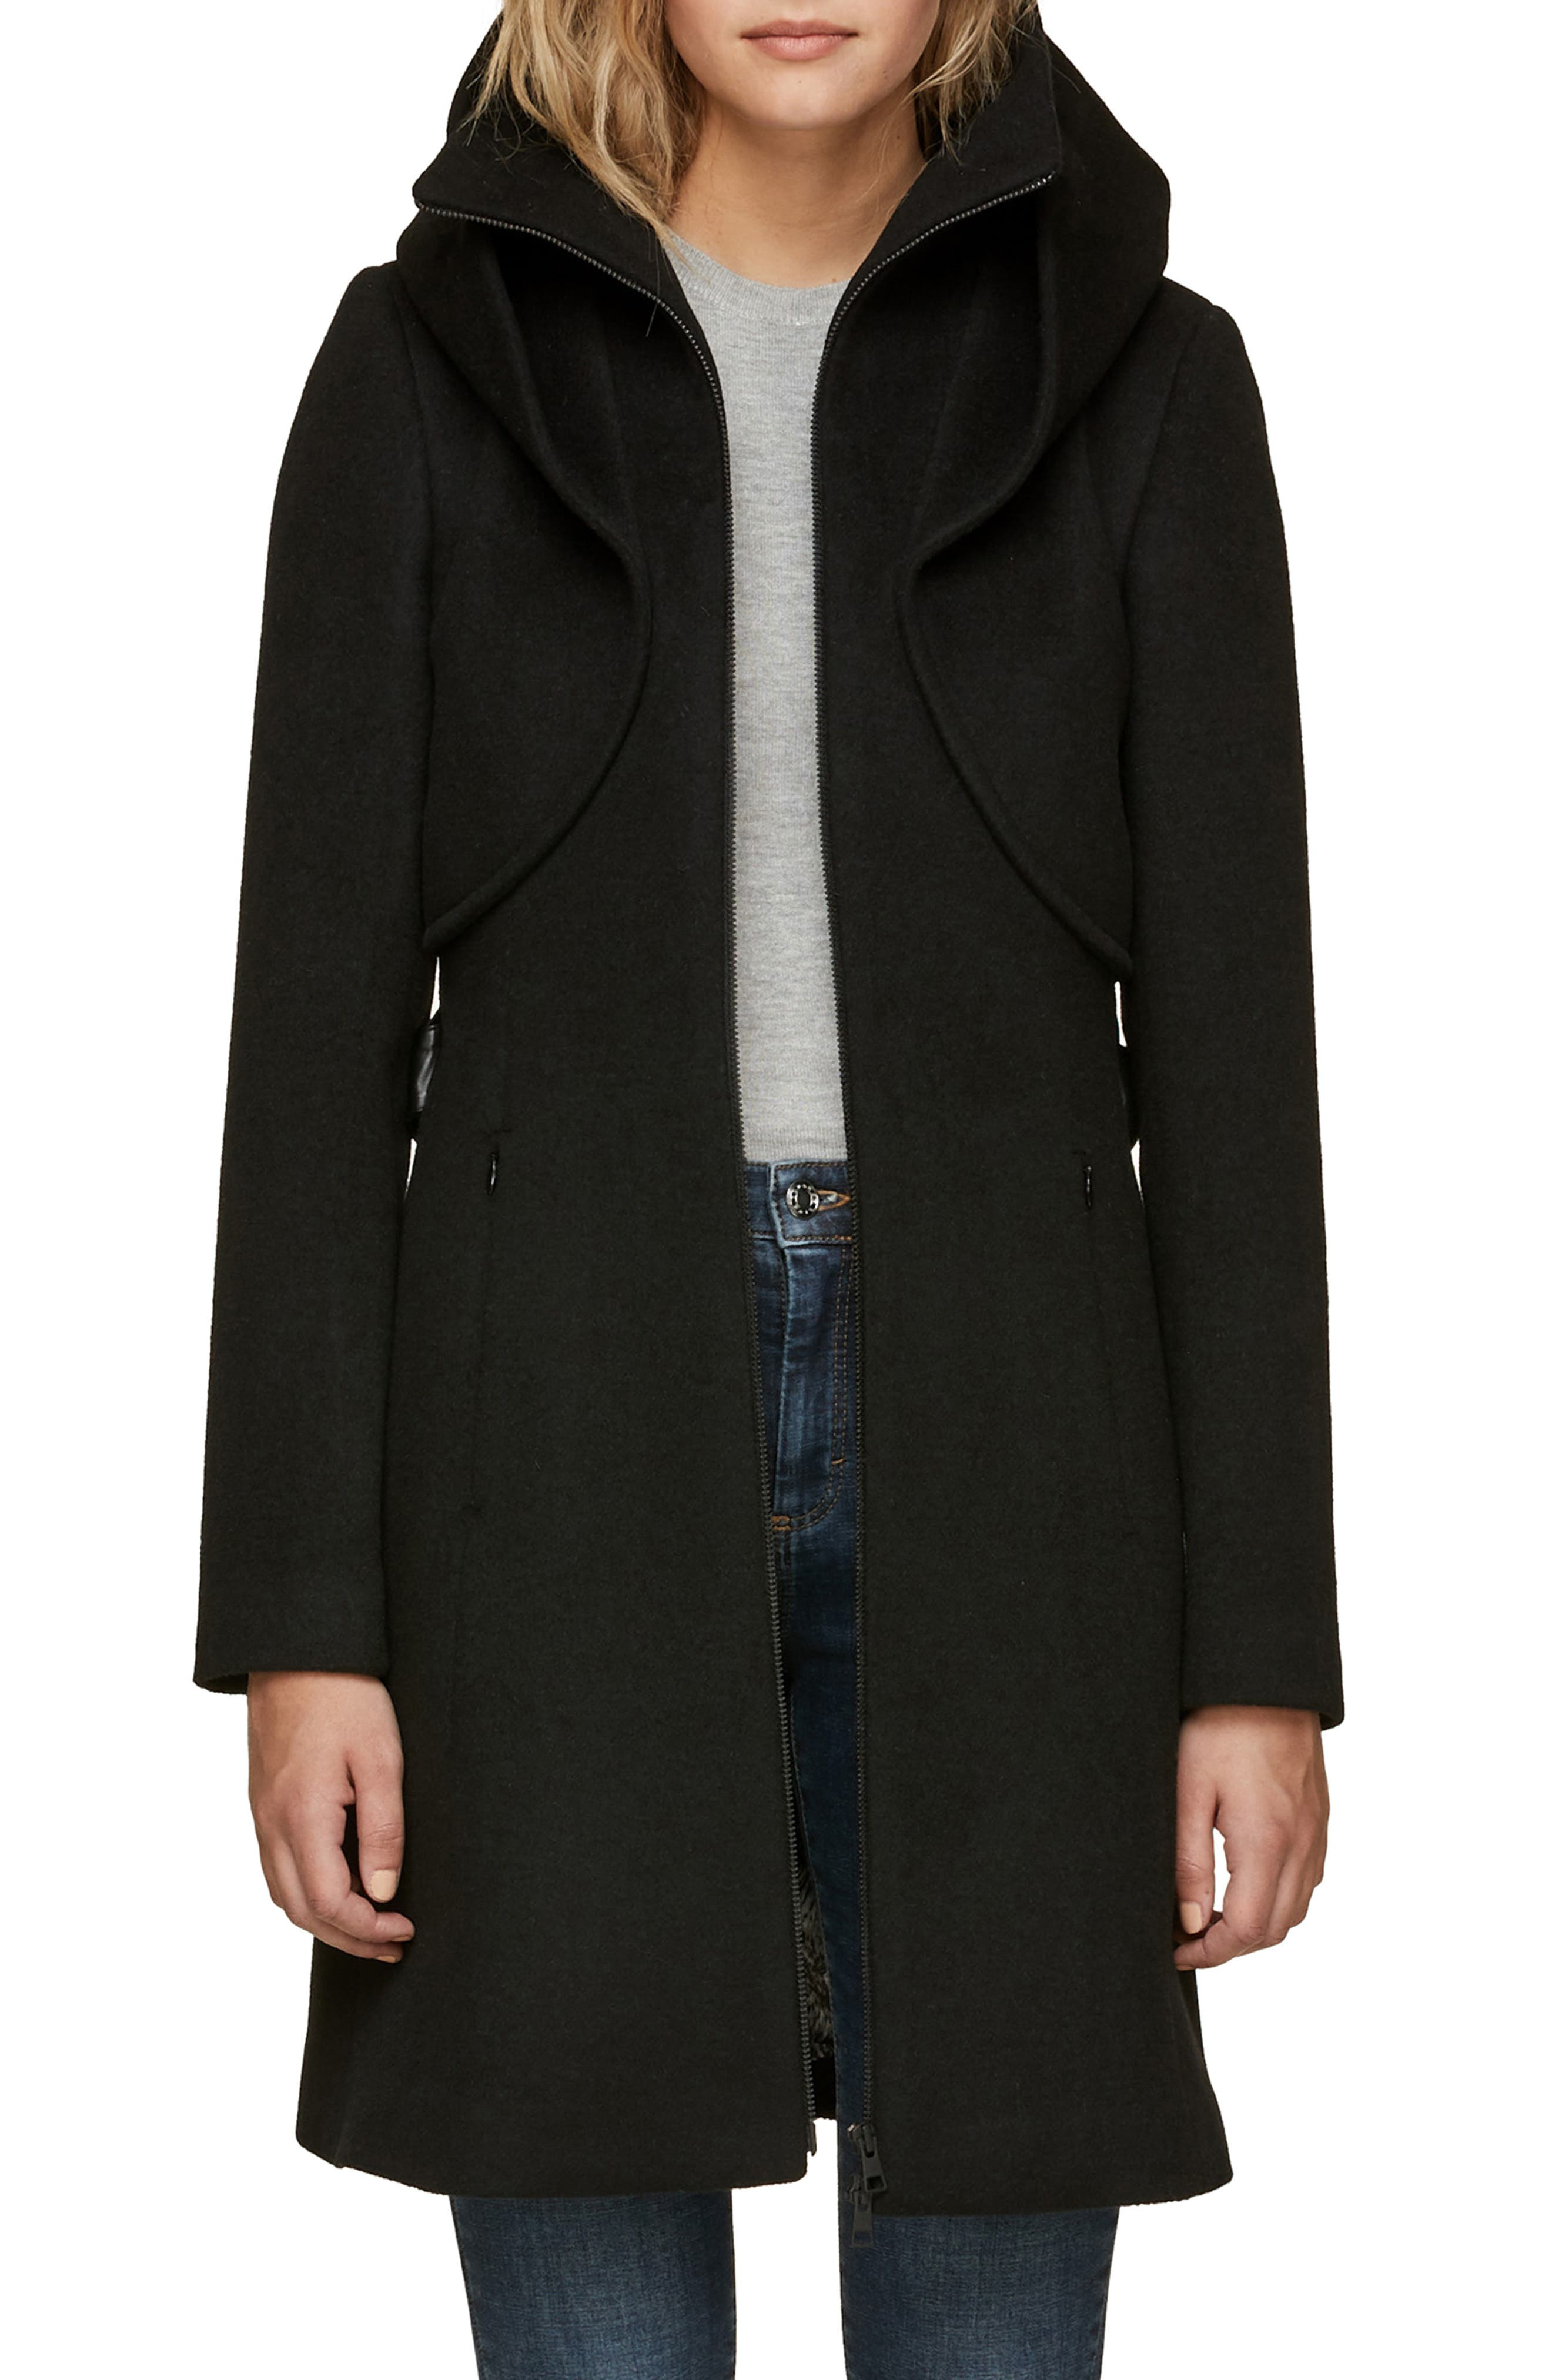 Arya Belted & Hooded Wool Coat,                             Main thumbnail 1, color,                             001